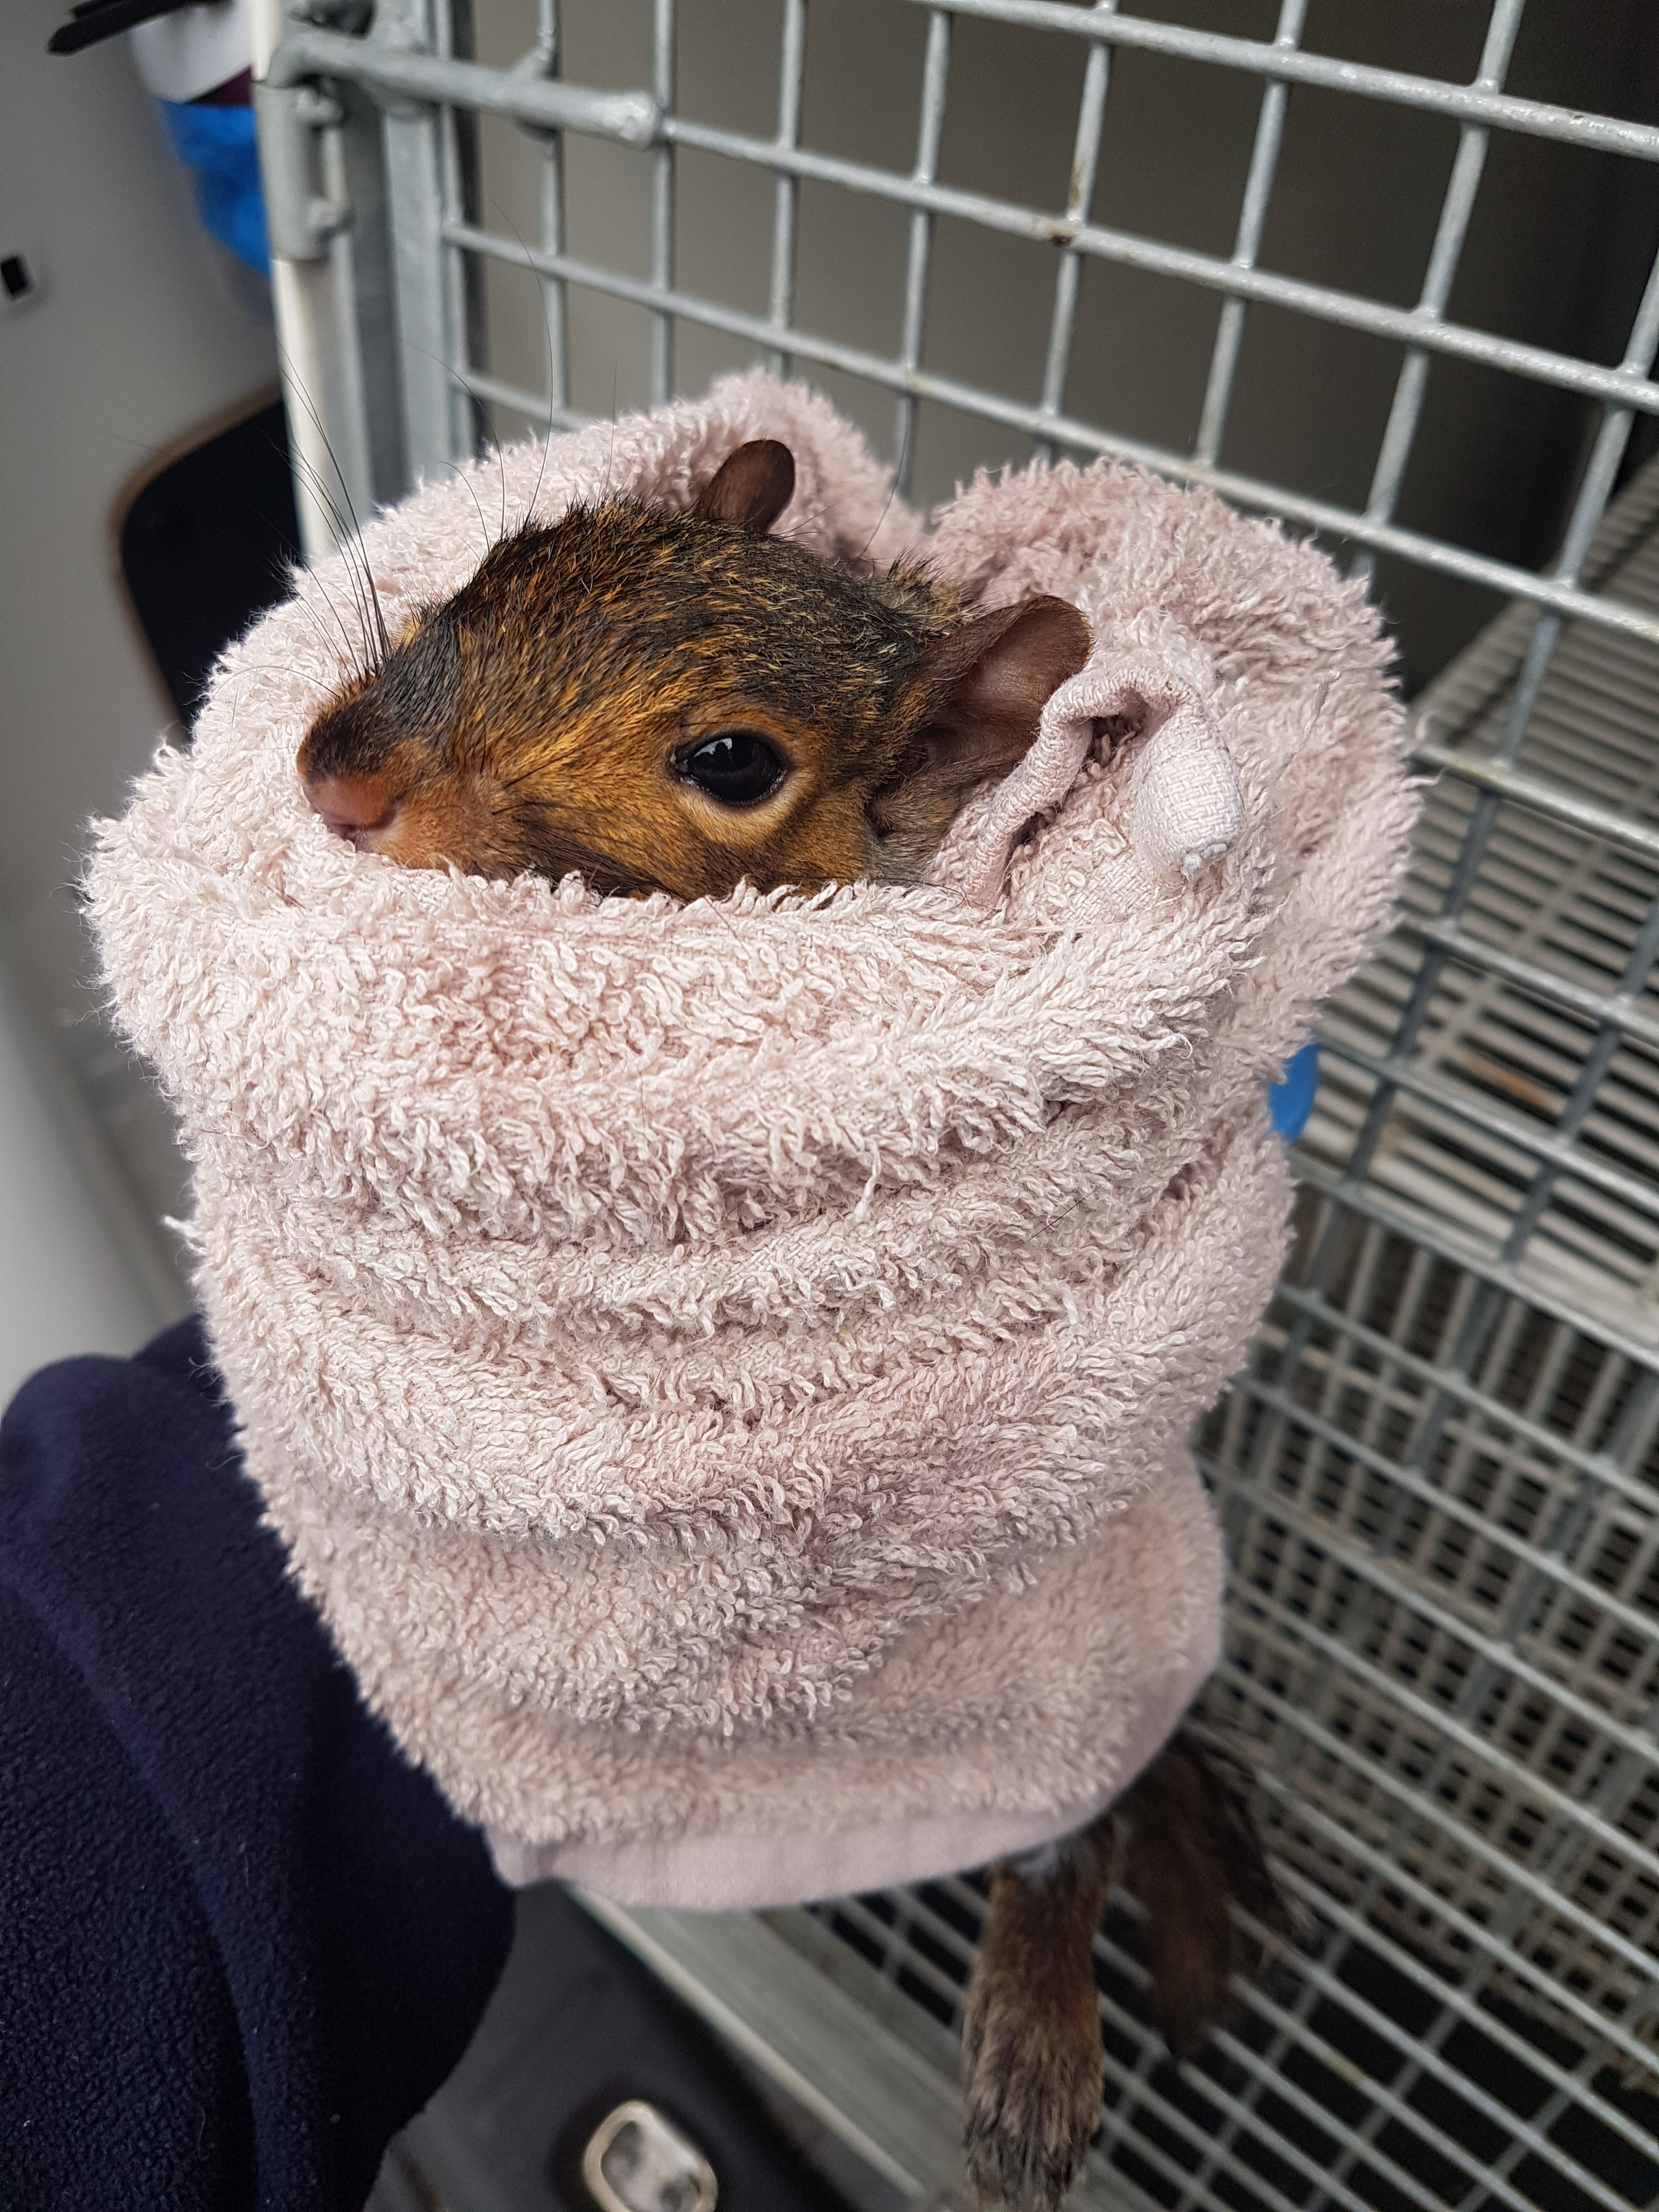 A squirrel rescued from a toilet by the RSPCA (RSPCA)